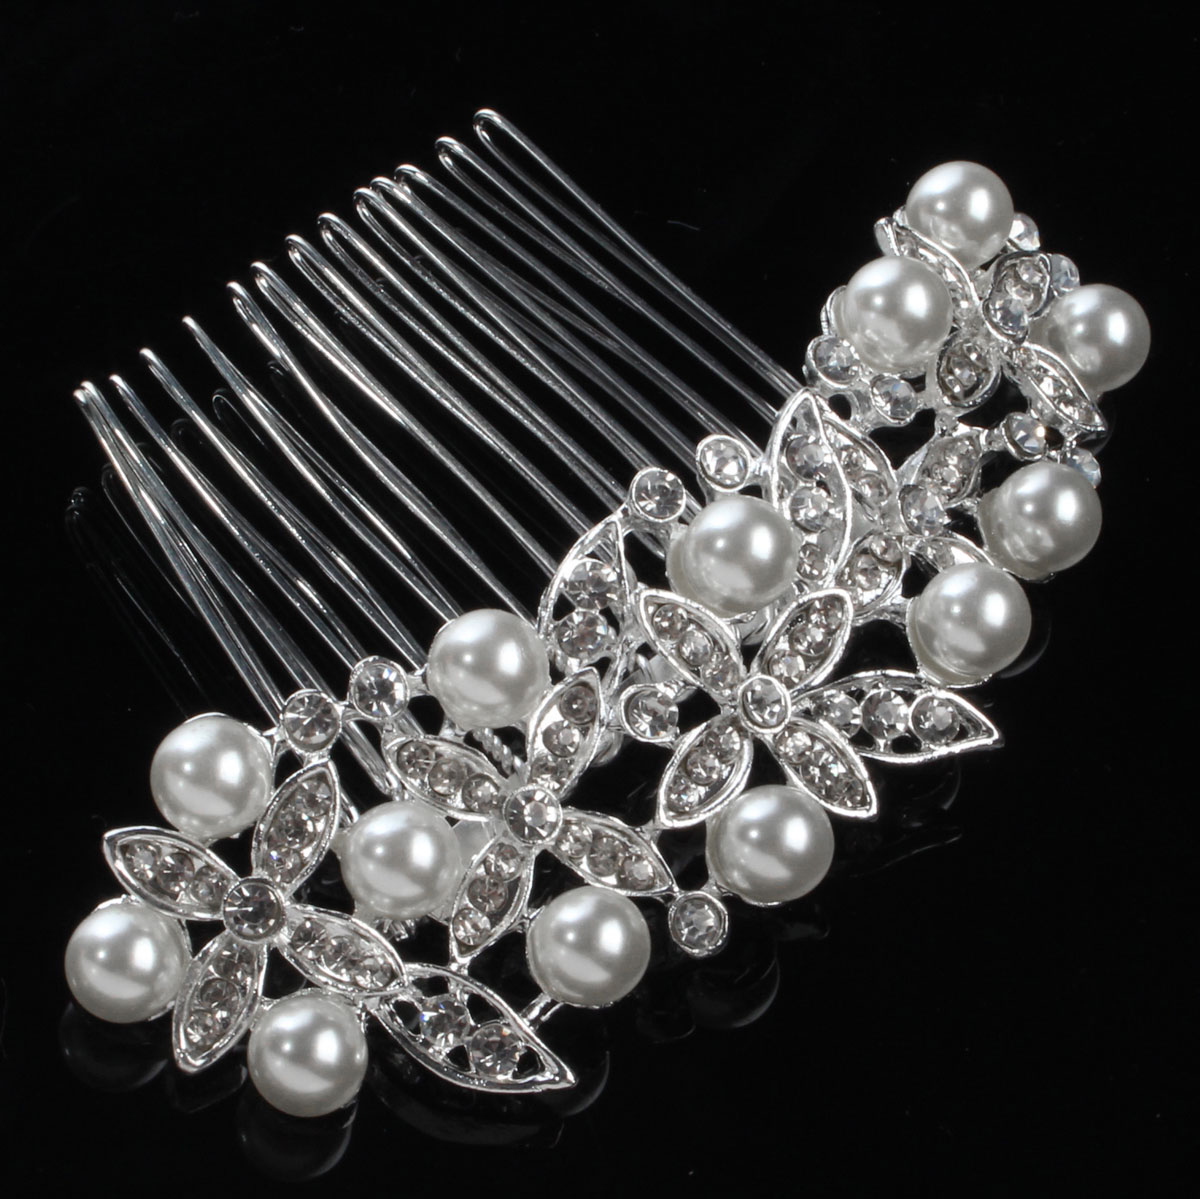 Bride Wedding Artificial Pearl Crystal Rhinestone Hair Clip Comb Hairpin Bridal Headpiece